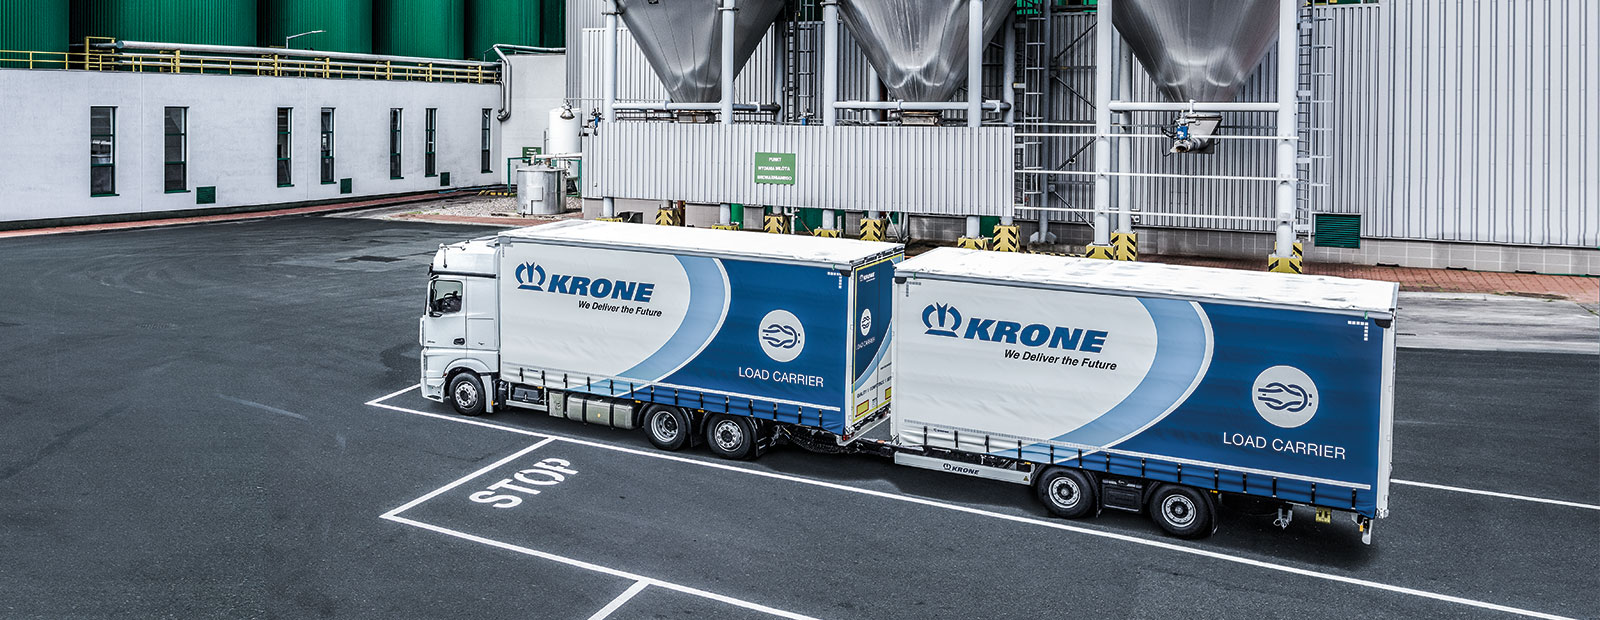 Krone Load Carrier